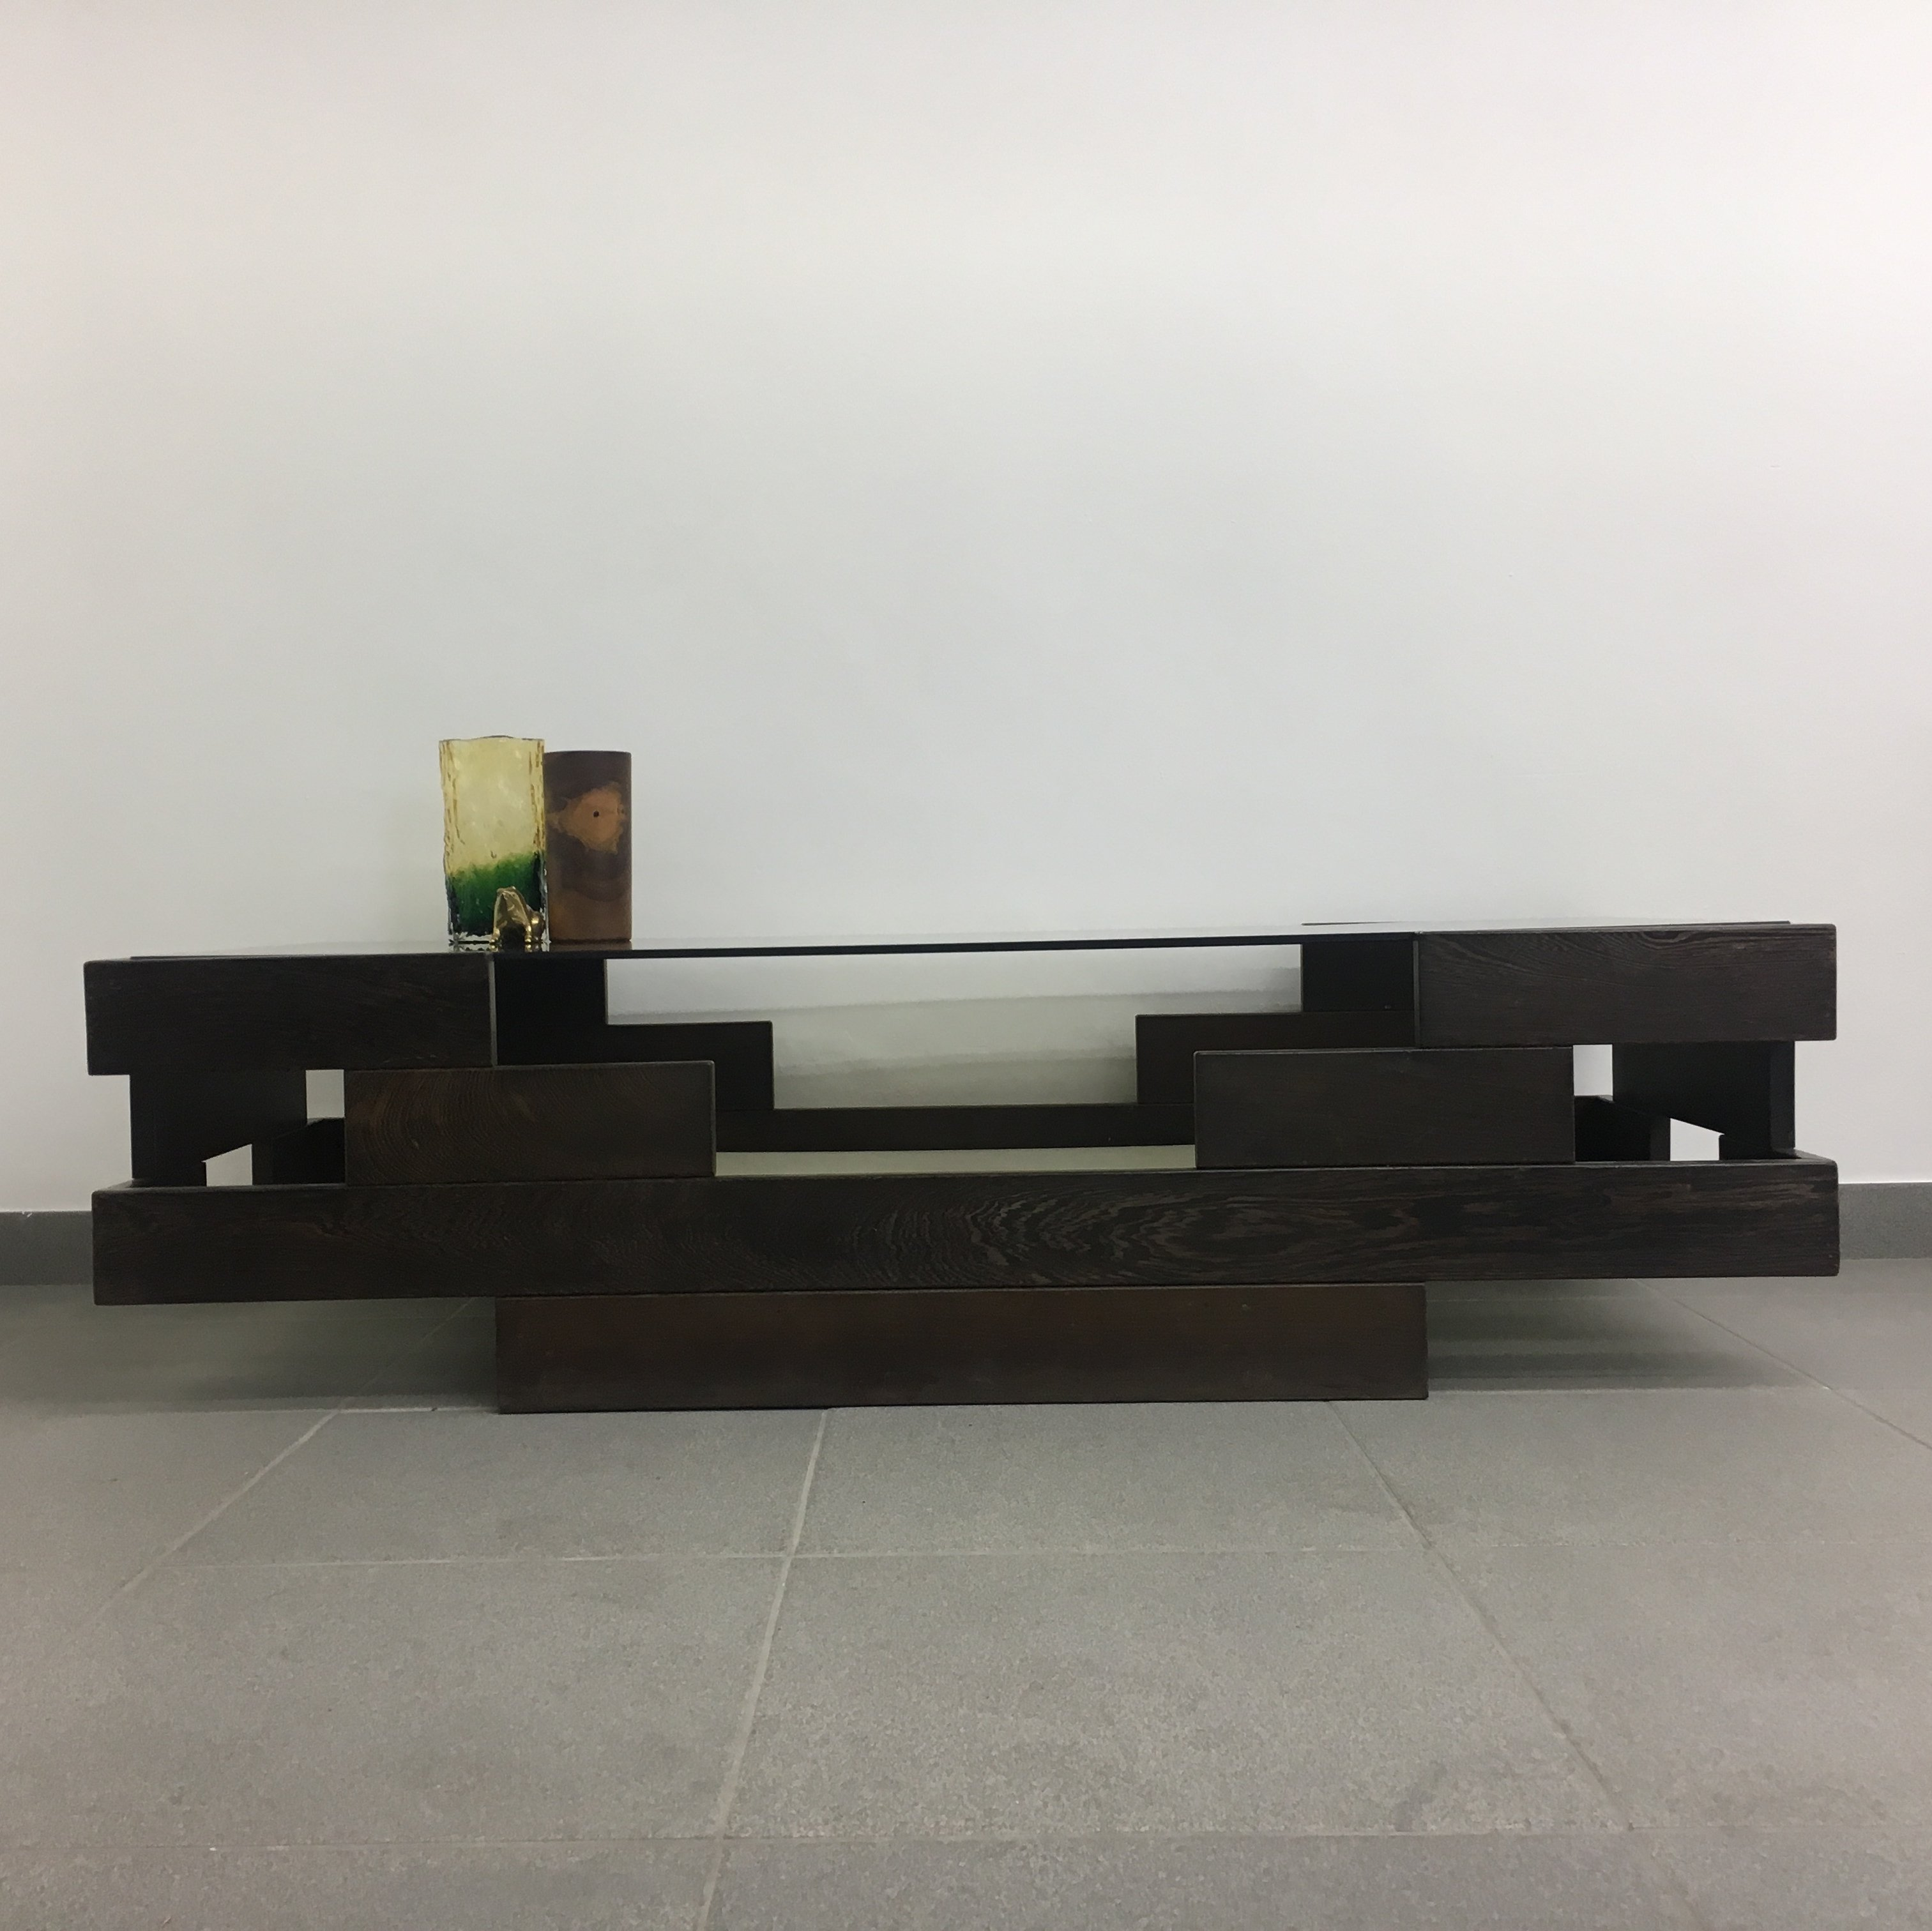 Floating Square Coffee Table In Green And Black Slatelike: Brutalist Wenge Coffee Table, 1970's